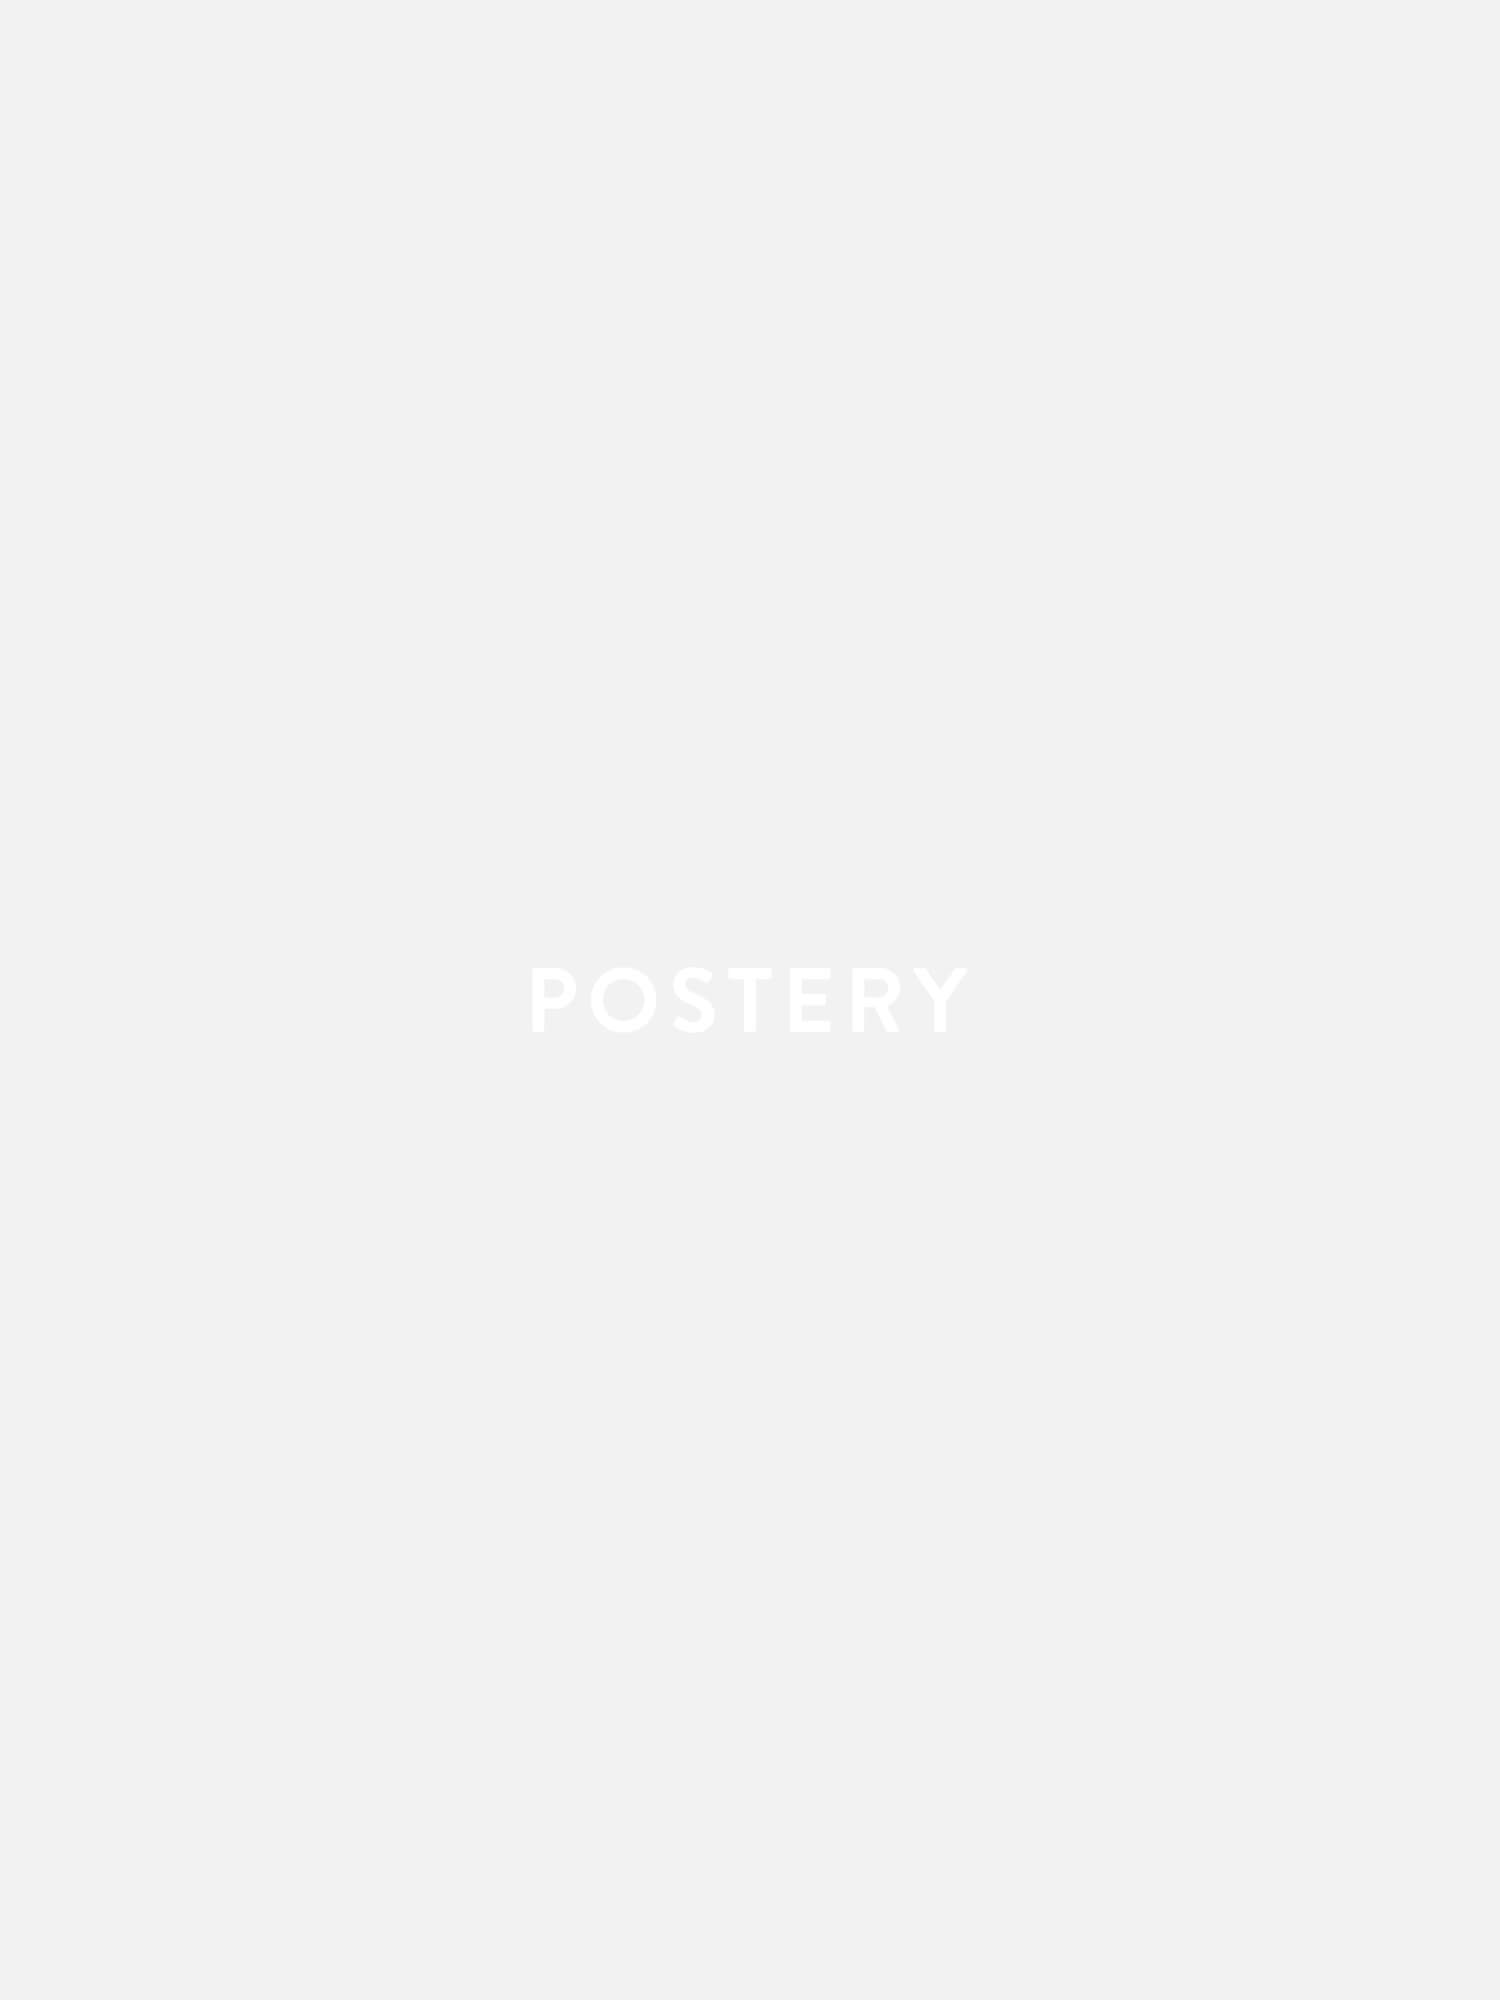 Rabbits Umbrella Poster